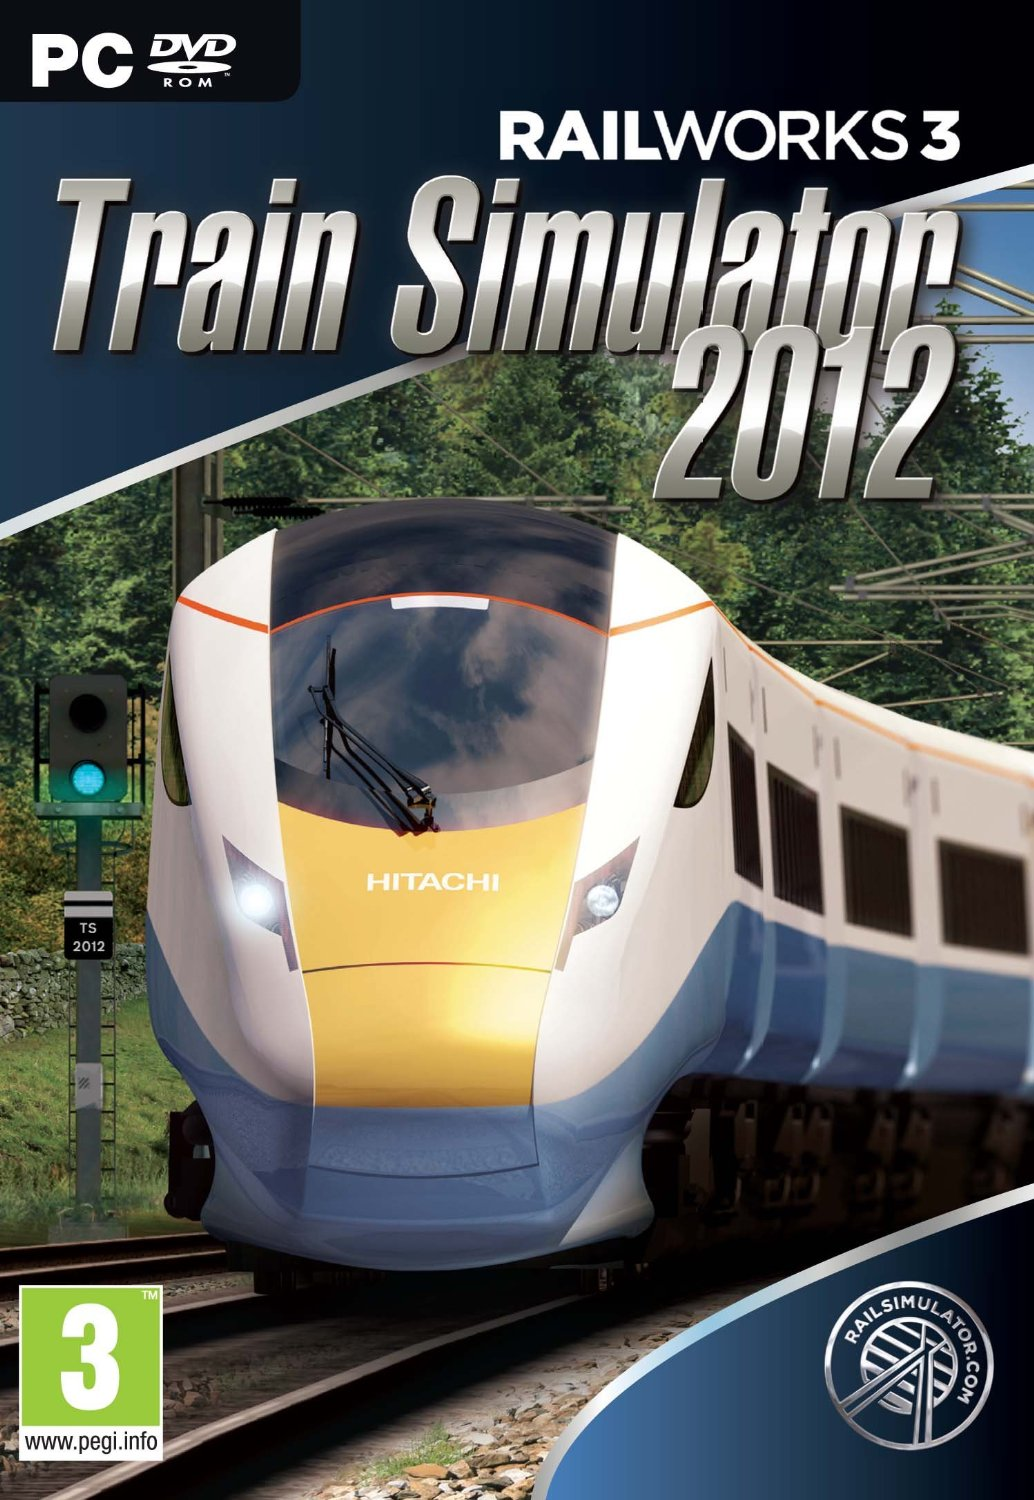 RailWorks 3: Train Simulator 2012 | Railworks Wiki | FANDOM powered